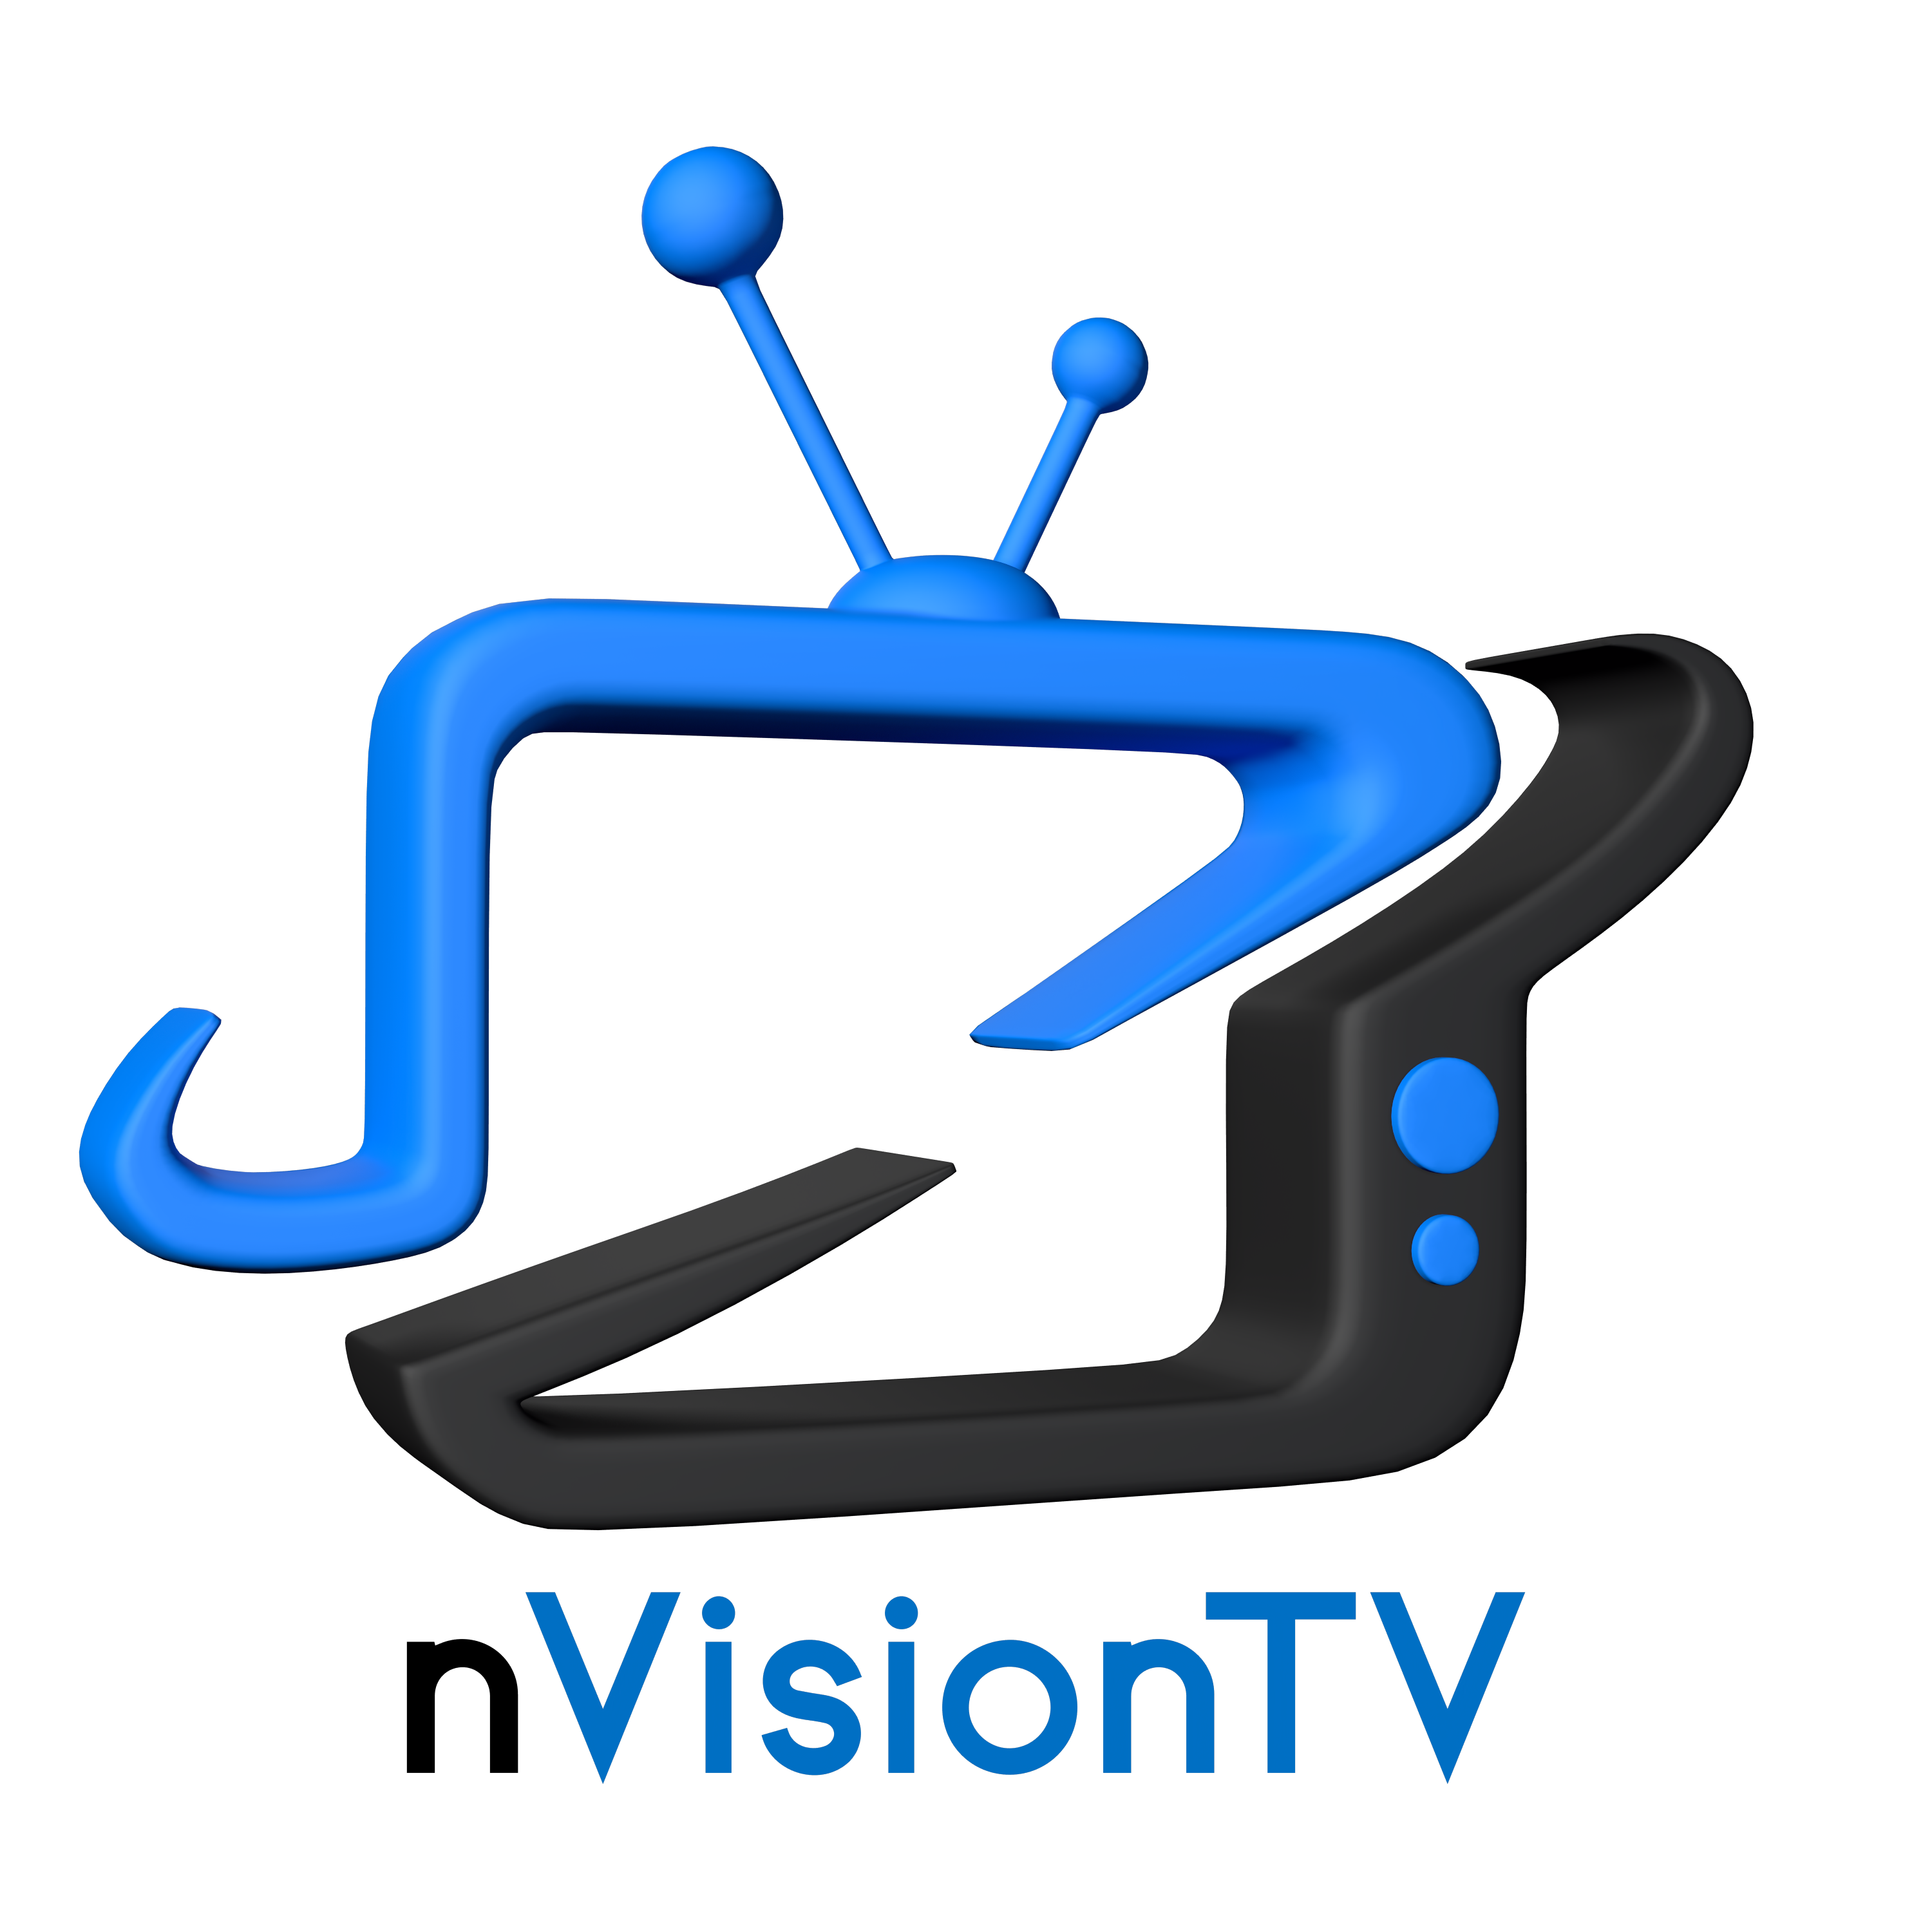 nVisionTV